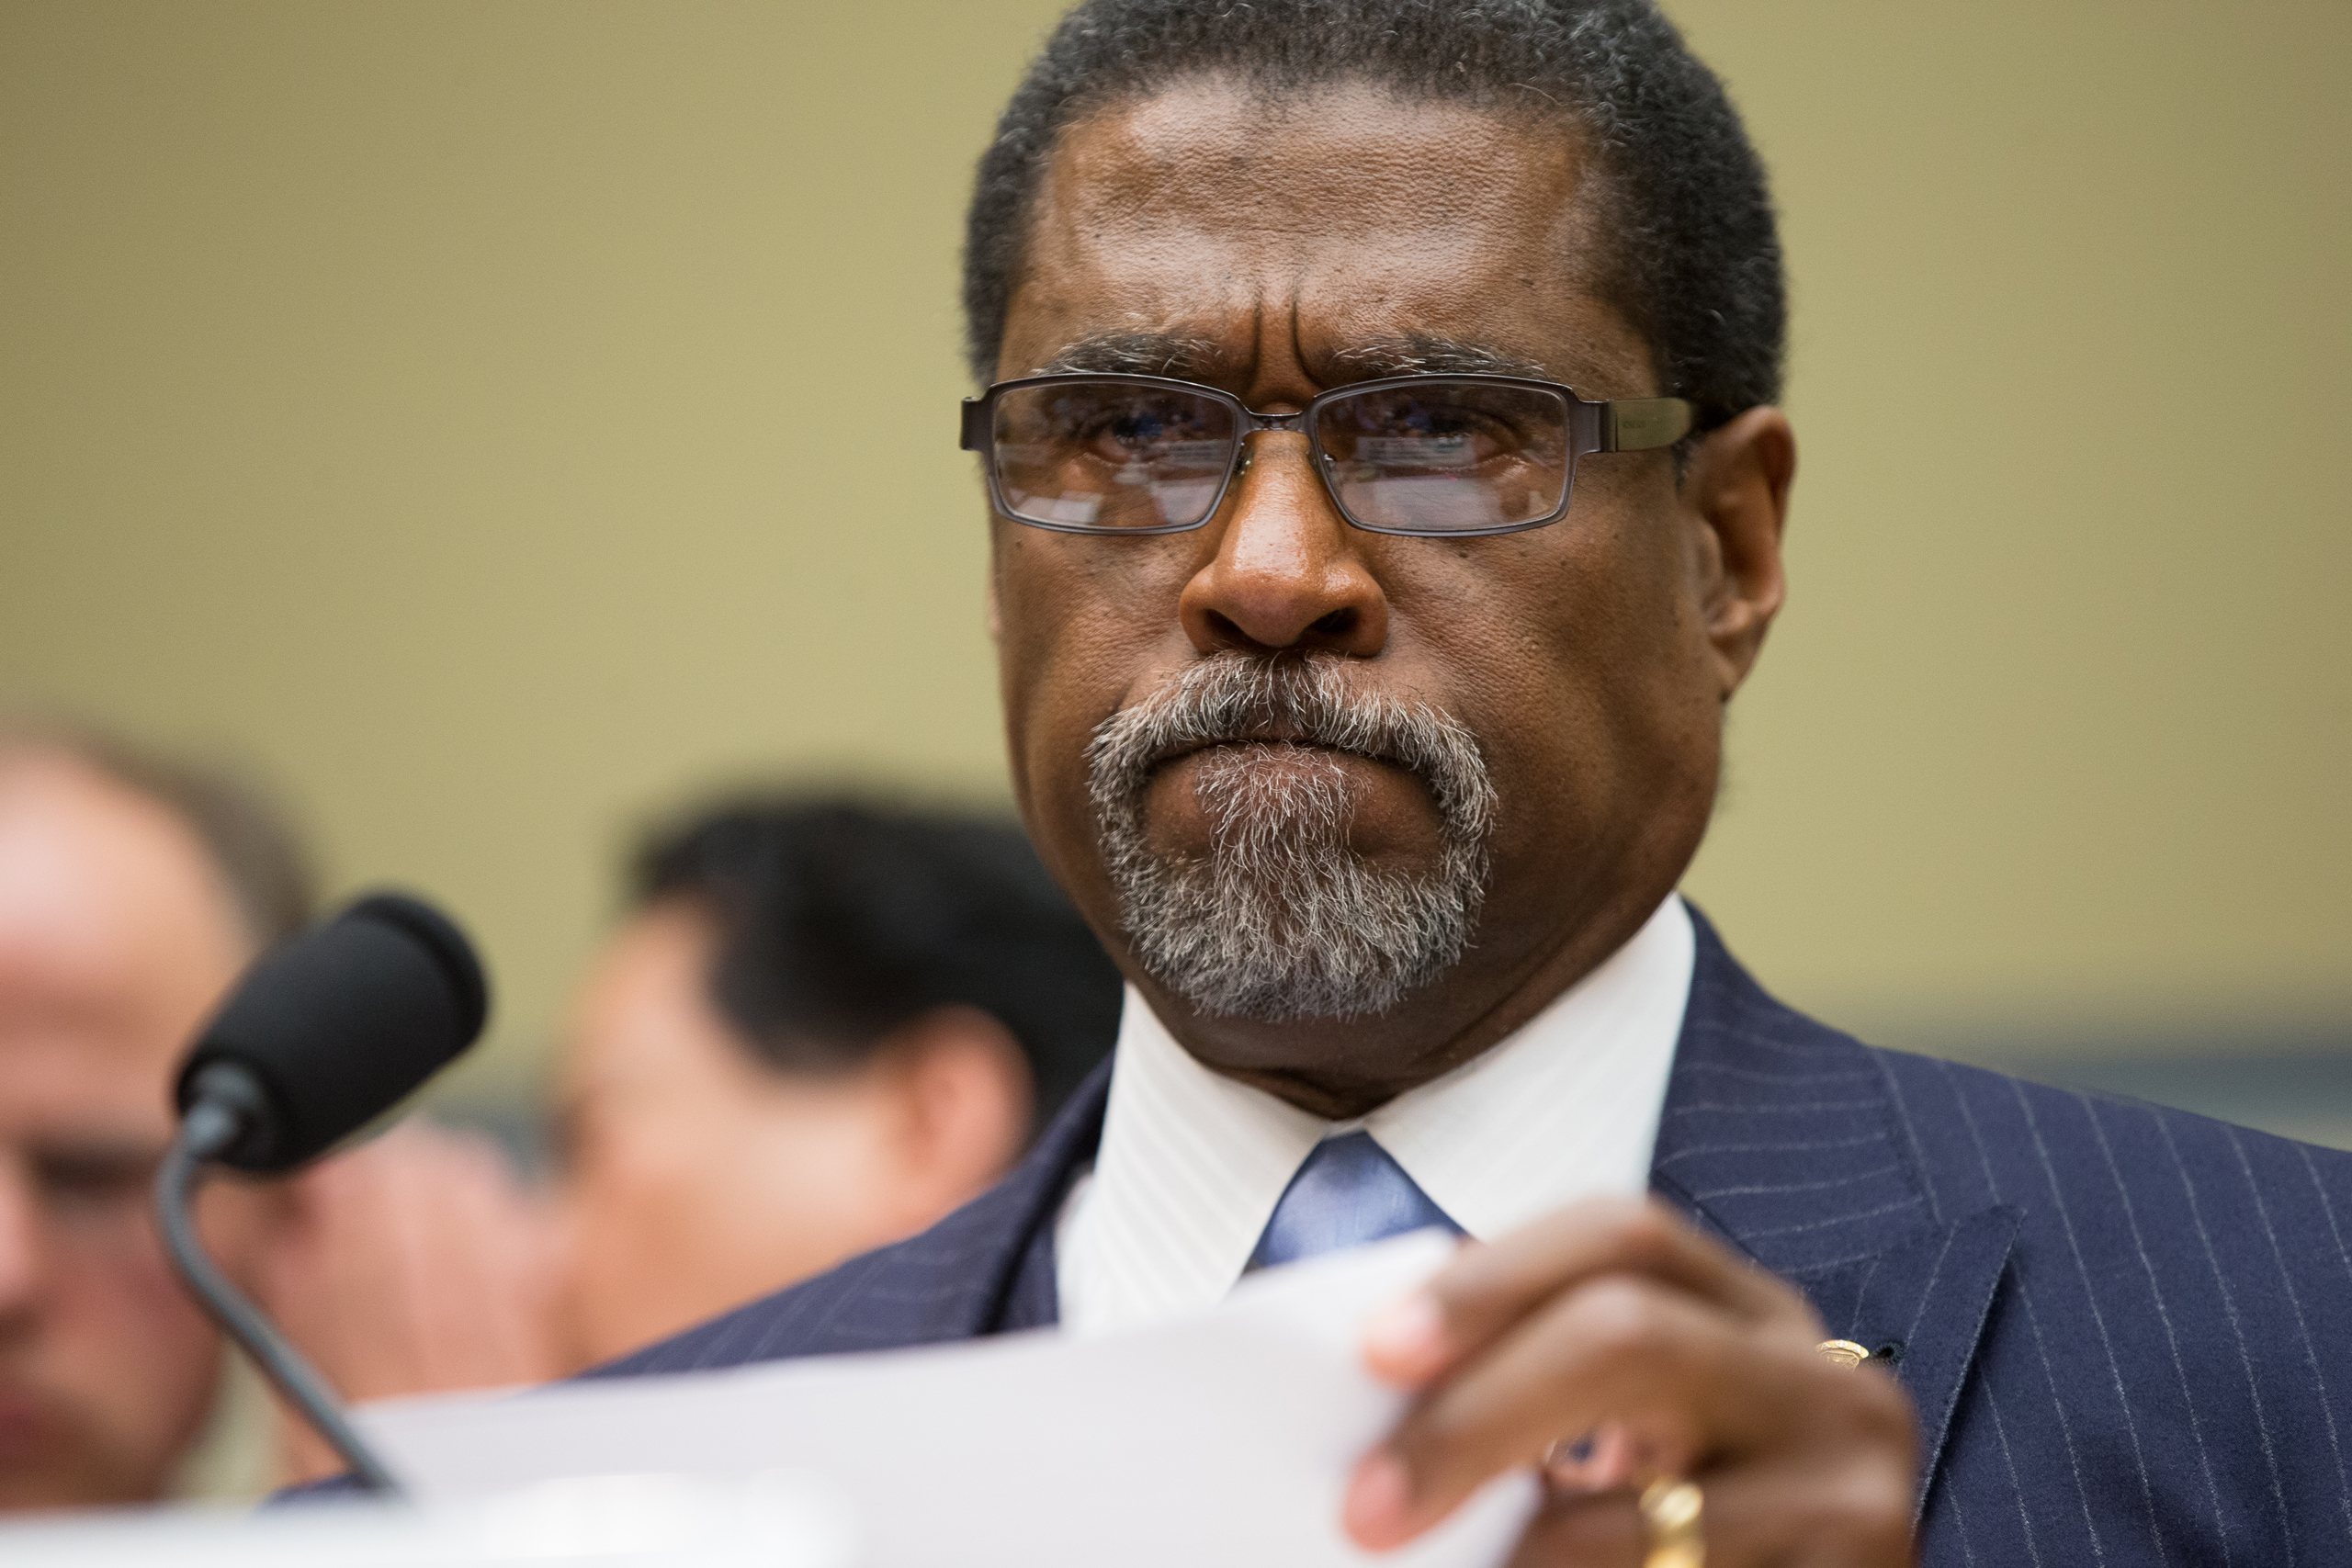 Former Flint, Mich., Emergency Manager Darnell Earley appears before a House Oversight and Government Reform Committee hearing, in Washington, on March 15, 2016.